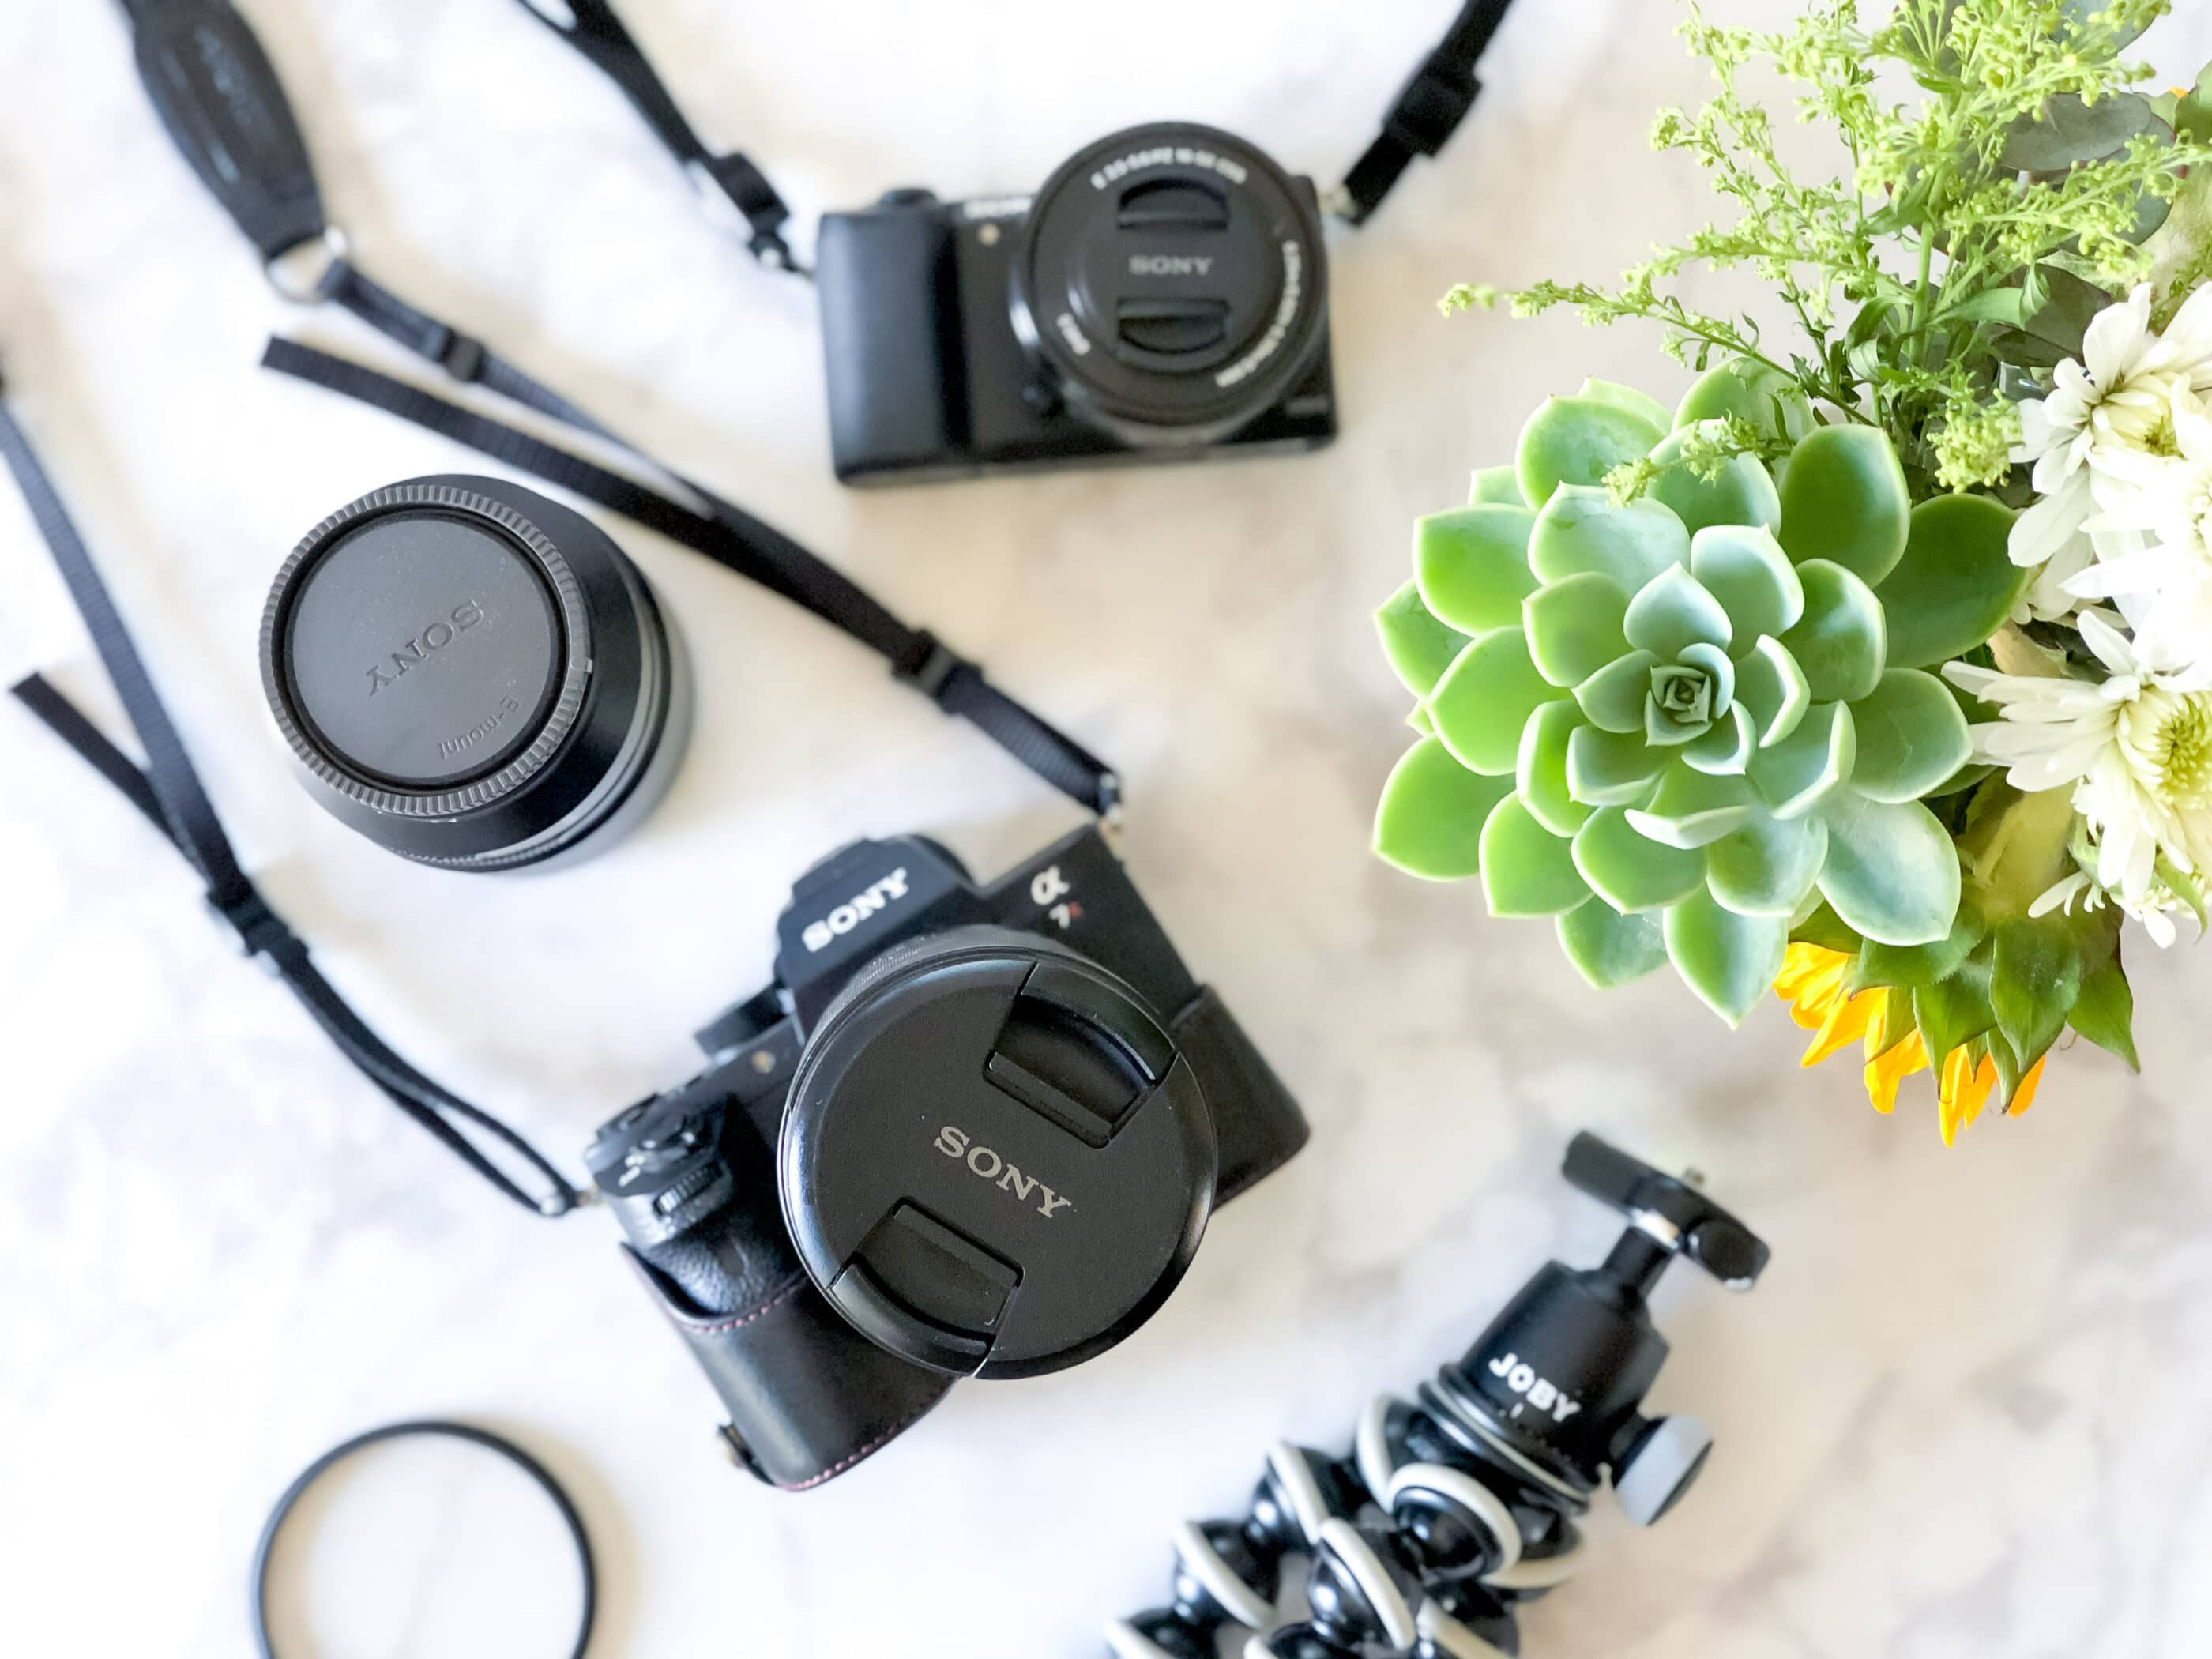 This is the best travel camera equipment that I use.